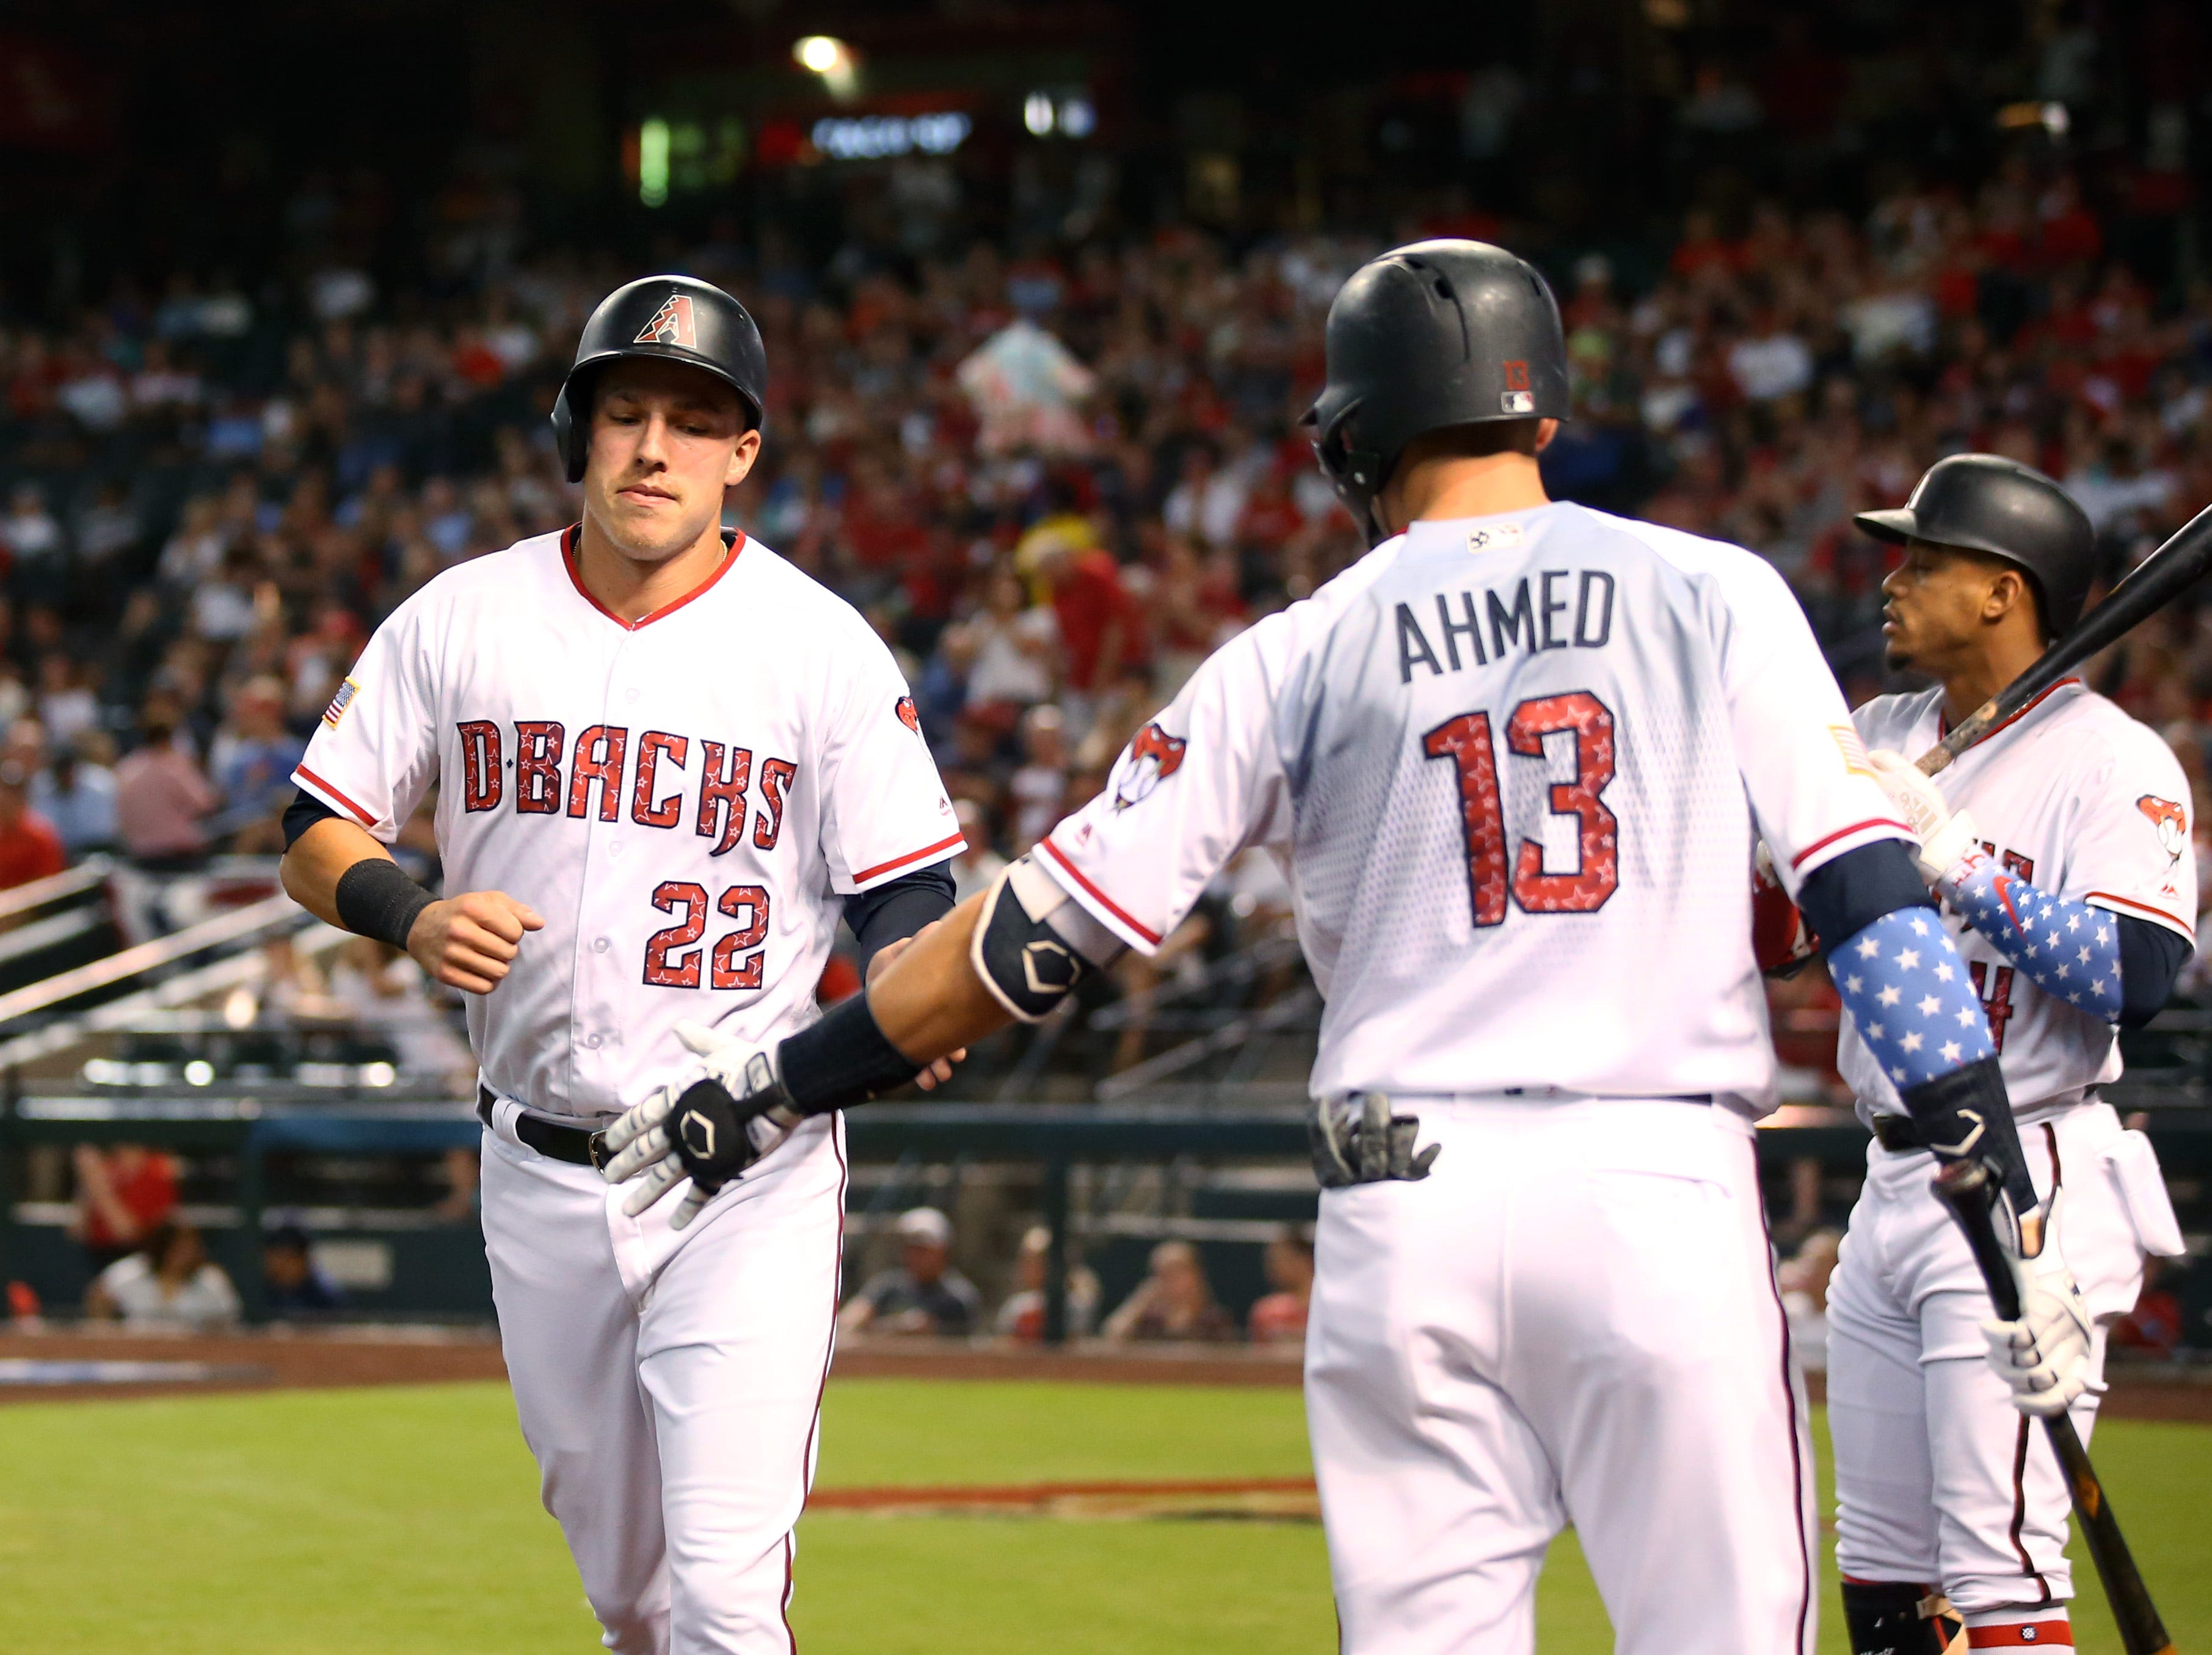 """Arizona Diamondbacks third baseman Jake Lamb (left) celebrates with teammate Nick Ahmed after scoring a run in a game against the St. Louis Cardinals at Chase Field this past season. Lamb paid $2.795 million for a """"modern farmhouse""""in Scottsdale's Arcadia neighborhood, real estate records show."""